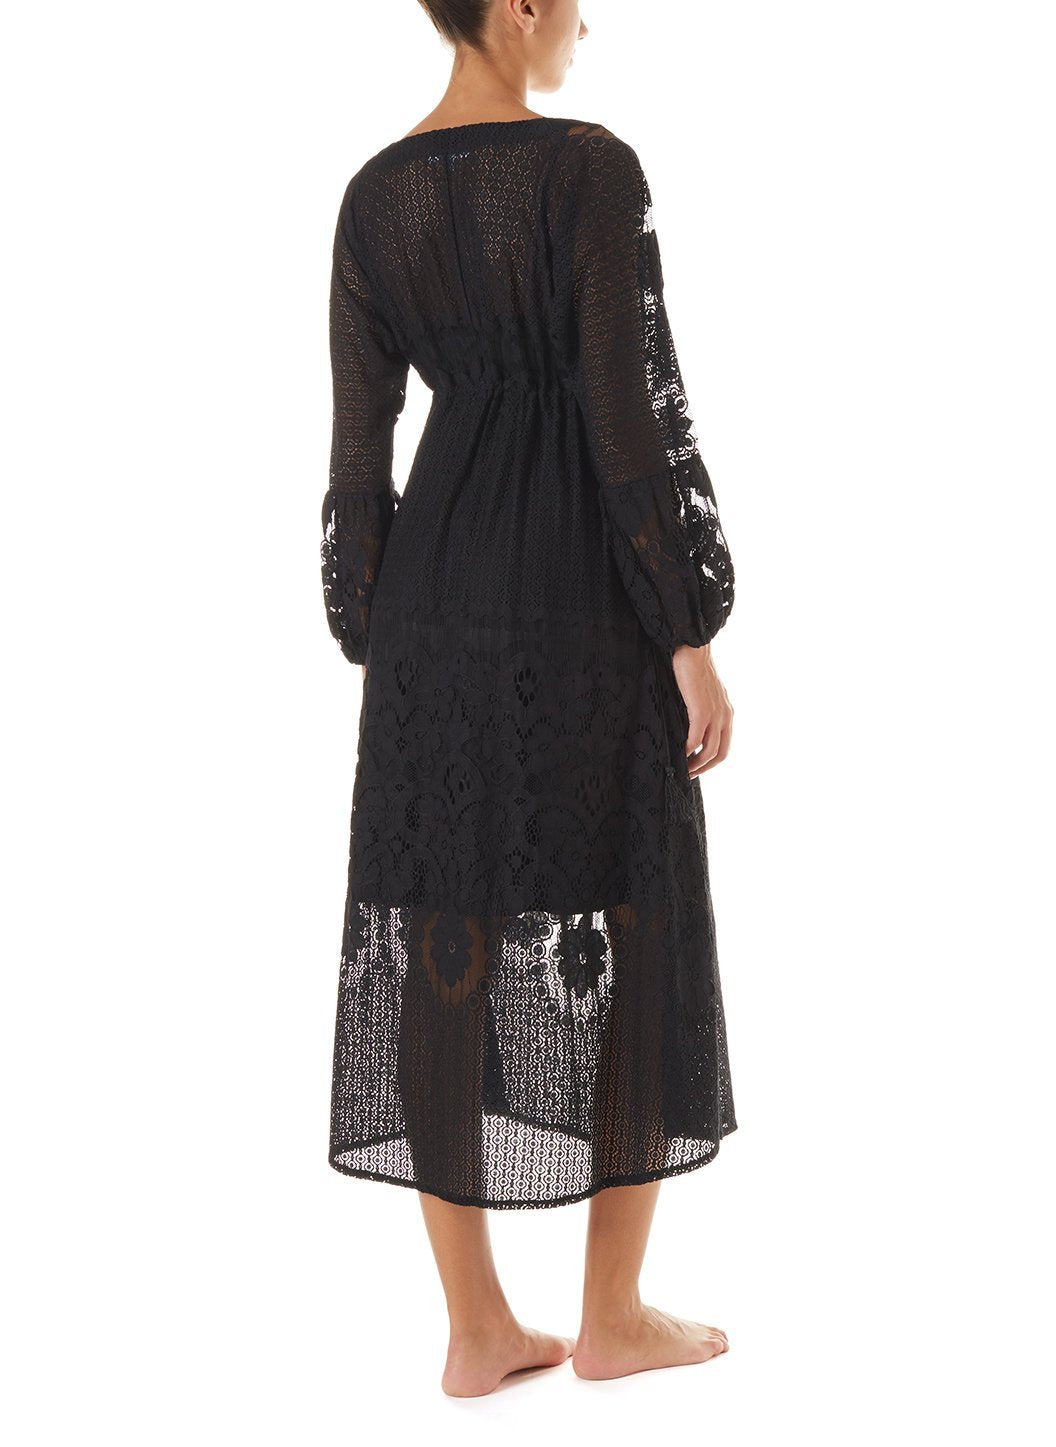 melissa black lace tieside midi dress 2019 B_2